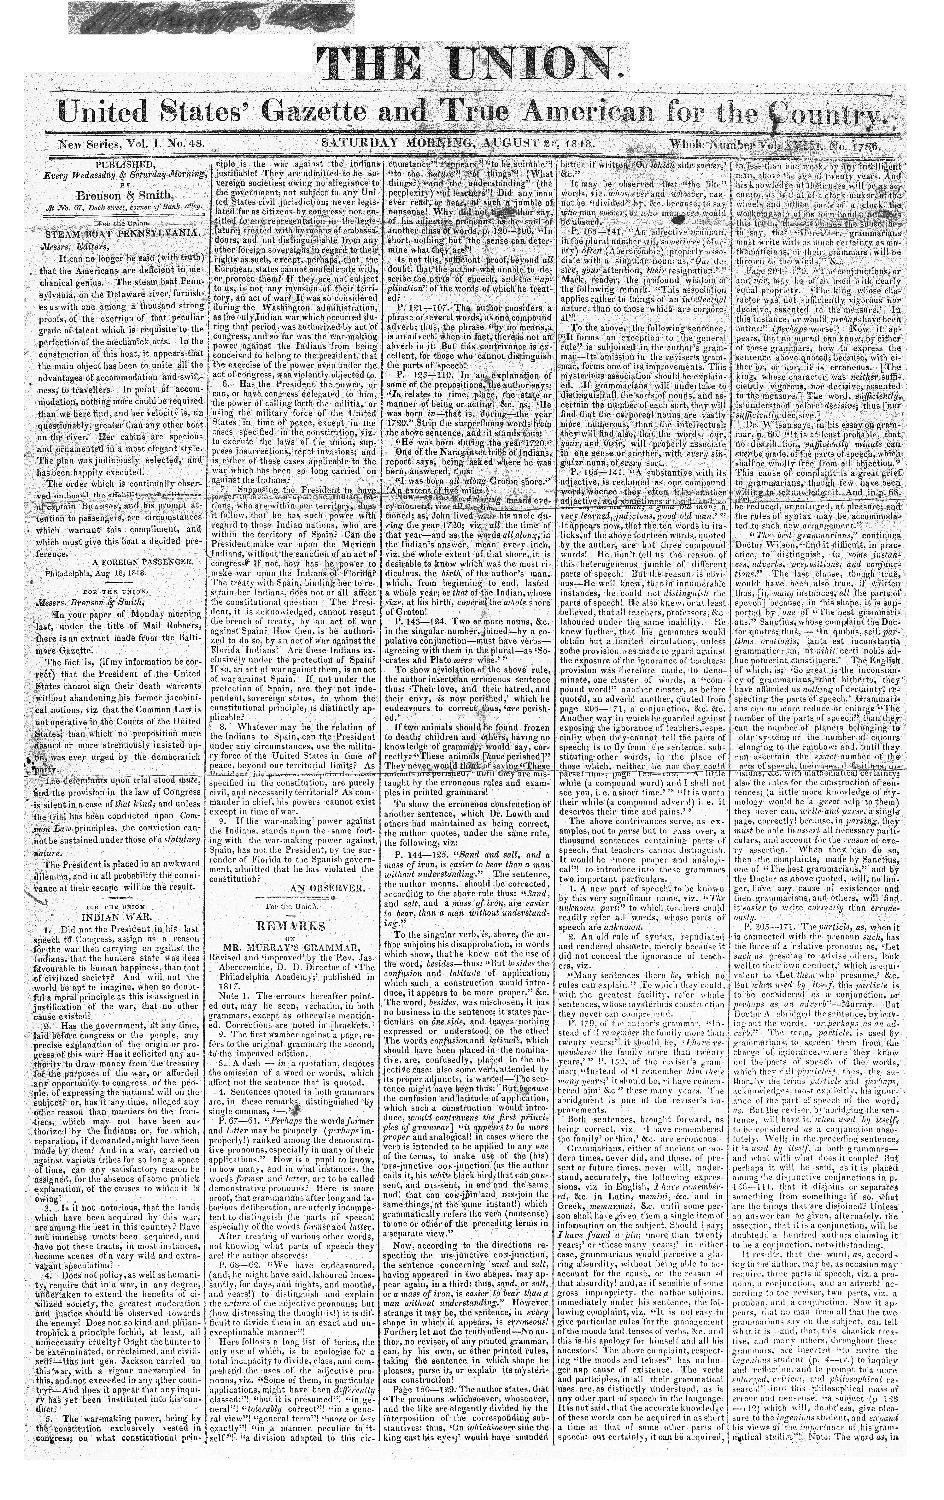 The Union, United States gazette, and true American for the country - page 1